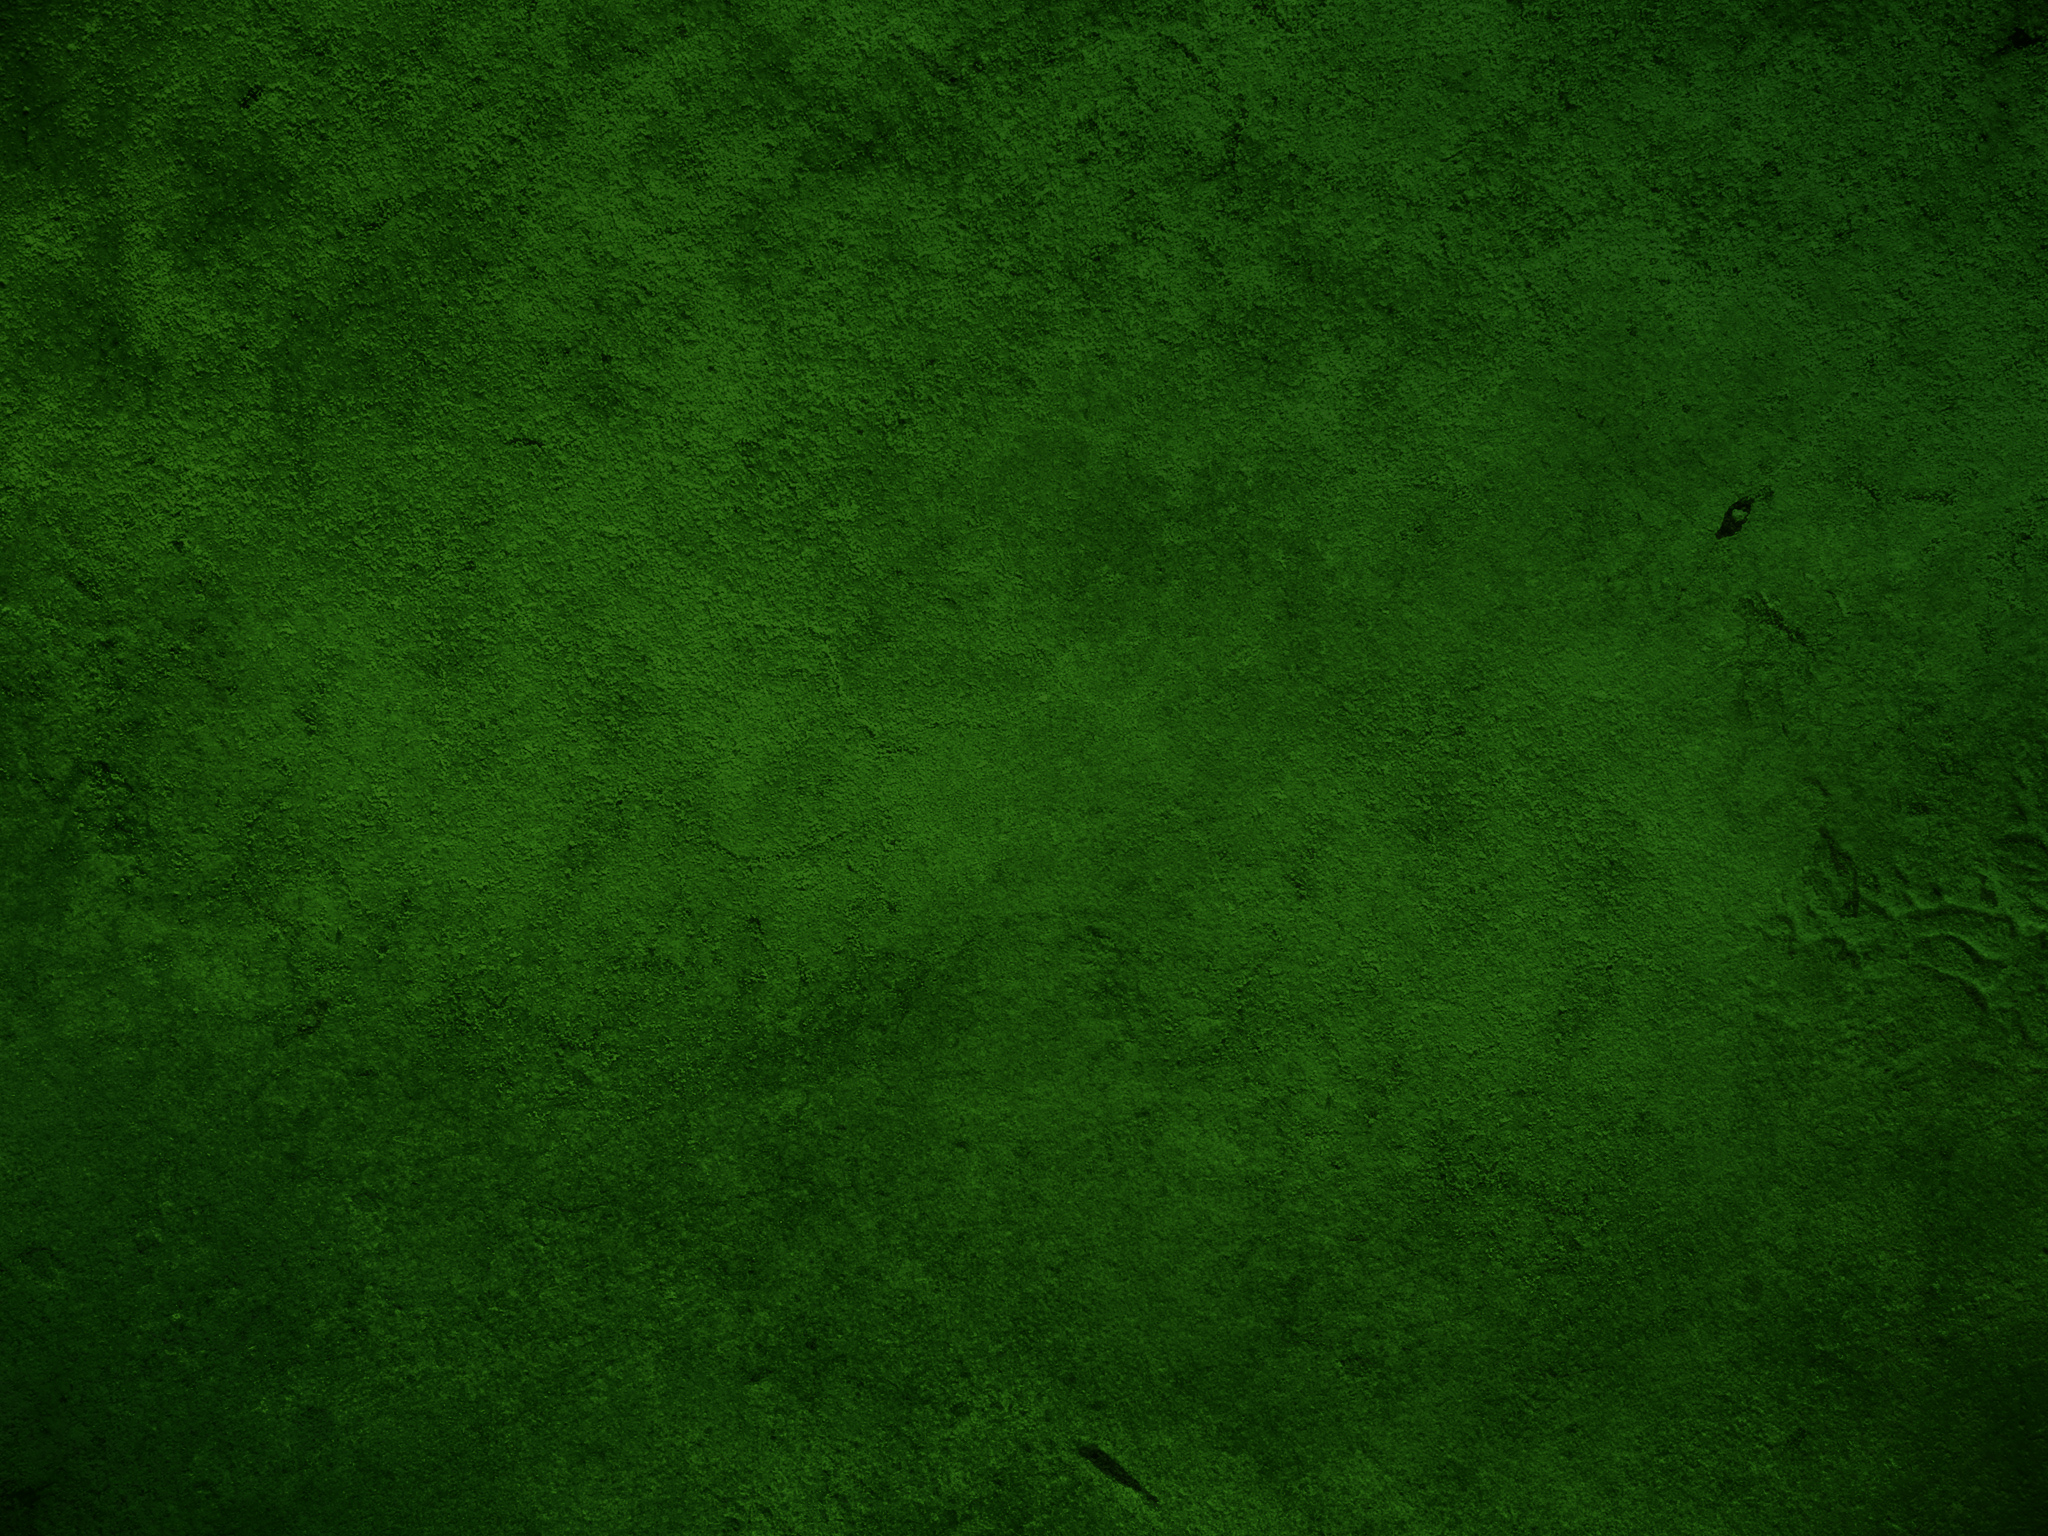 Emerald Green Wallpaper - WallpaperSafari